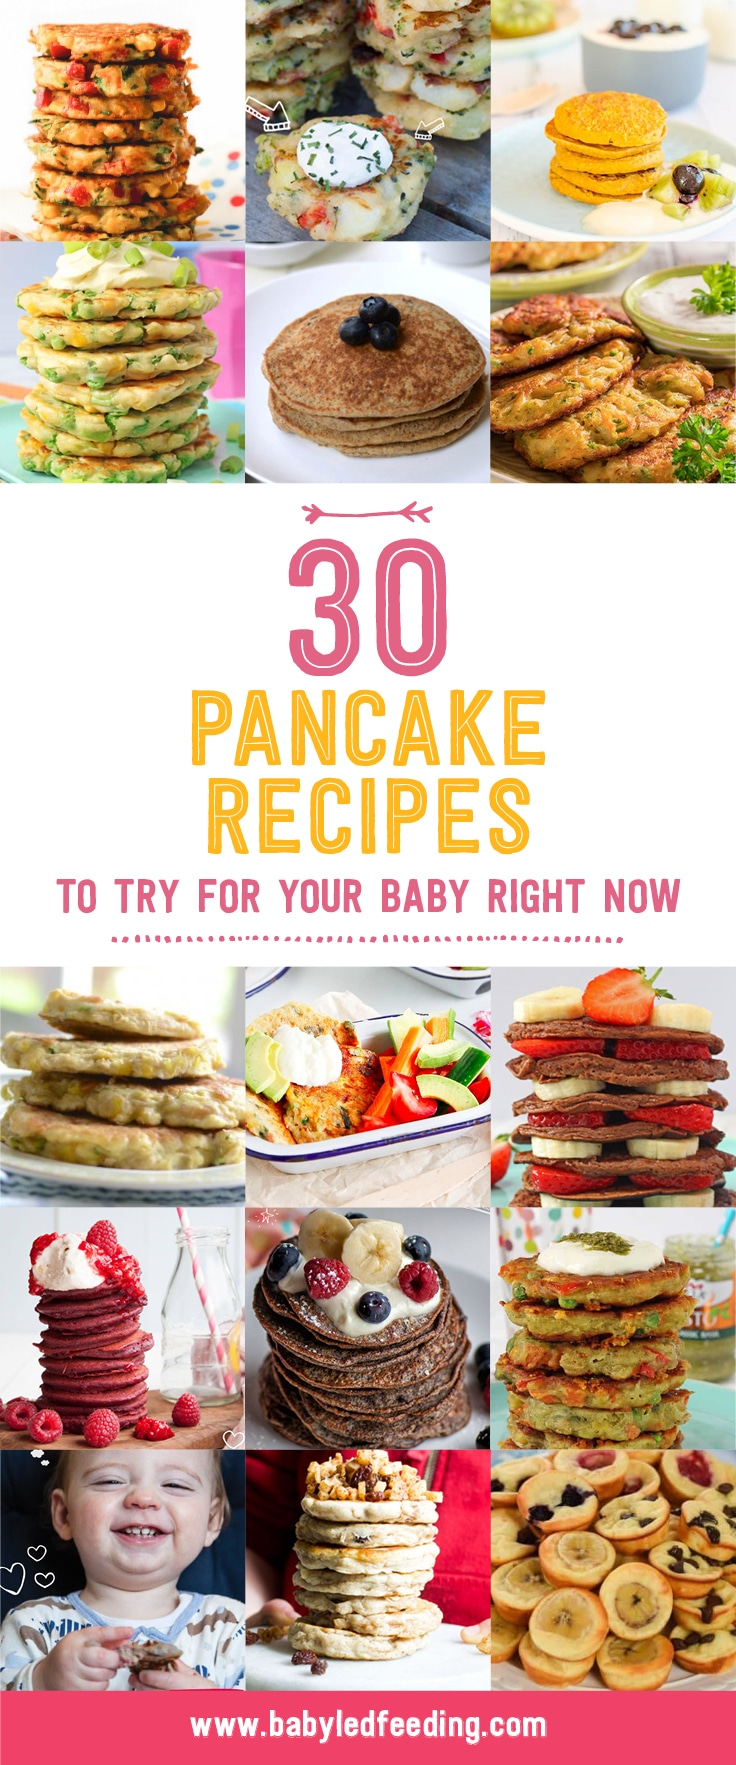 Ultimate List of Pancake Recipes! Baby pancakes, veggie pancakes, fruit pancakes, oat pancakes, wheat free pancakes, quinoa pancakes... Healthy sweet pancake and savory pancake recipe. Make ahead and freeze! The ultimate baby led weaning finger food! #pancakes #pancakerecipe #babyledweaning #pickyeater #fingerfood